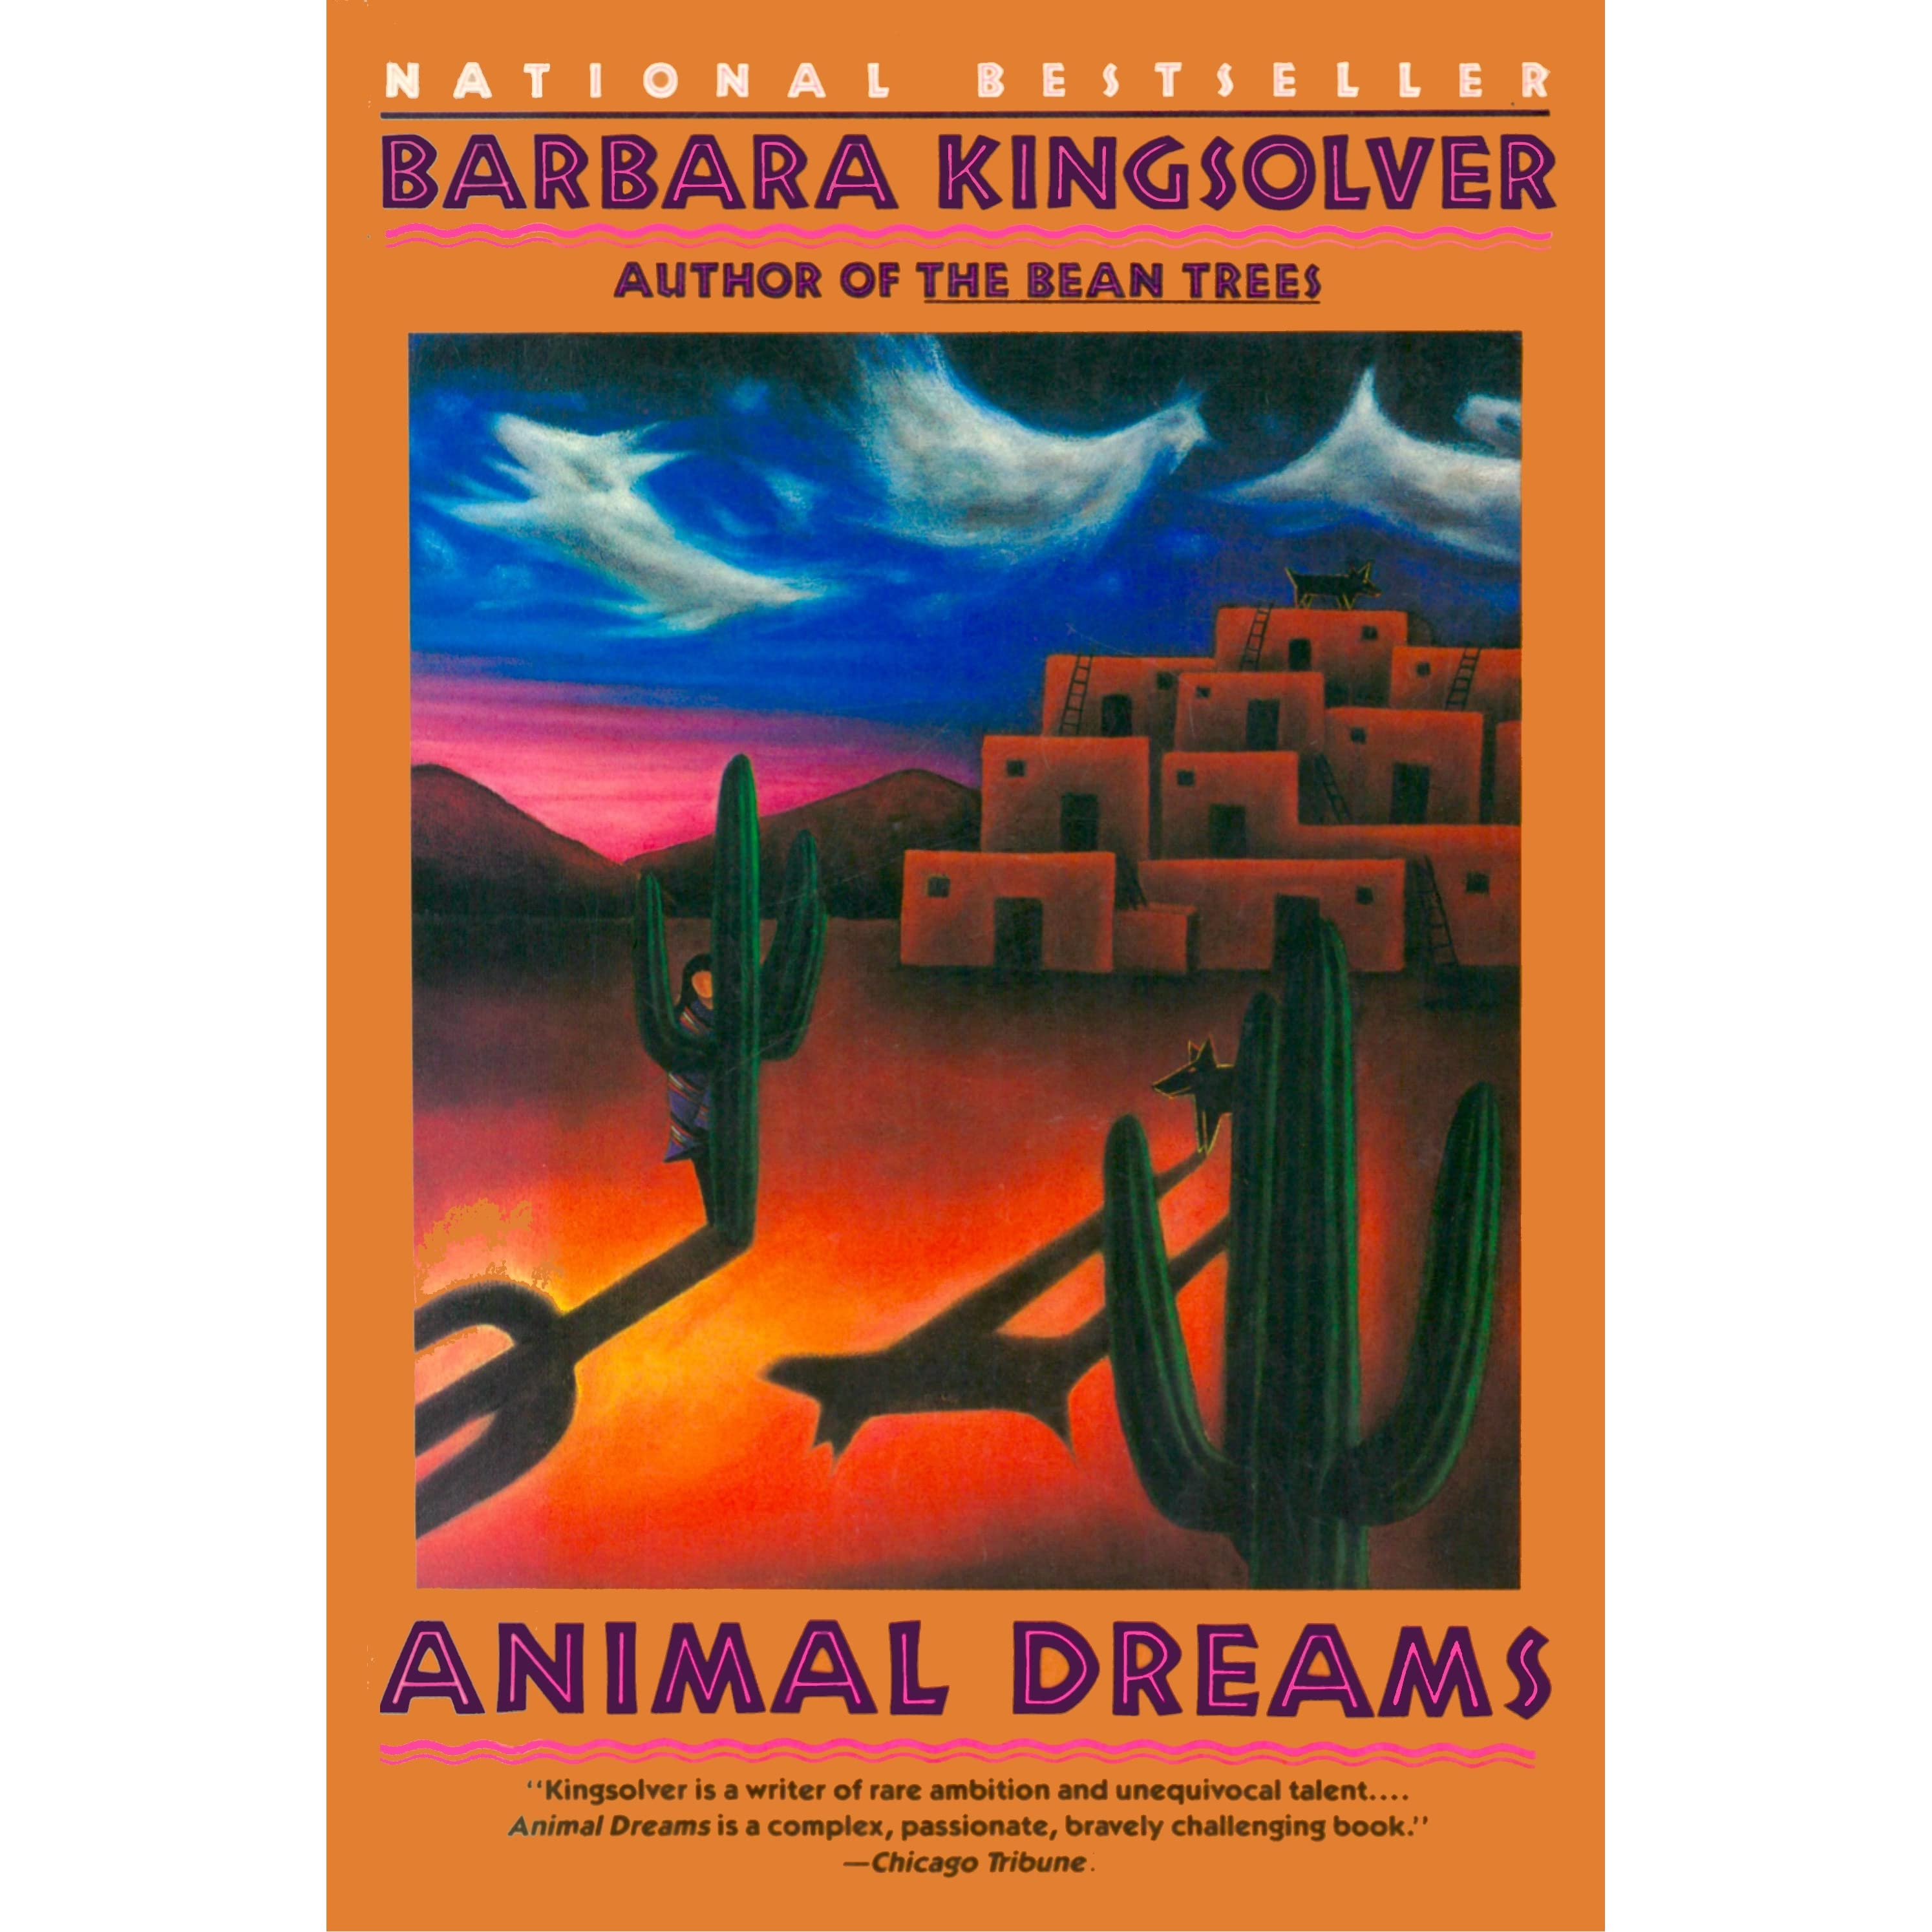 essays on animal dreams by barbara kingsolver Buy a cheap copy of animal dreams book by barbara kingsolver from the acclaimed author of the bean trees and homeland don't let the essay part deter you.